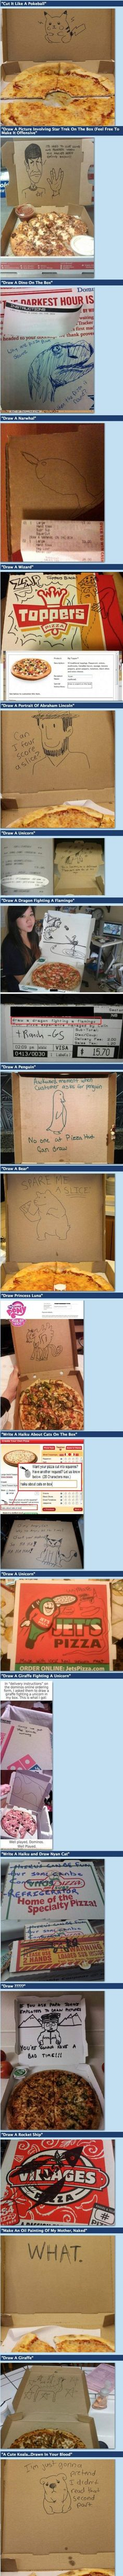 ummmm i never knew you could ask for them to draw you something on the box... pizza night will never be the same again.